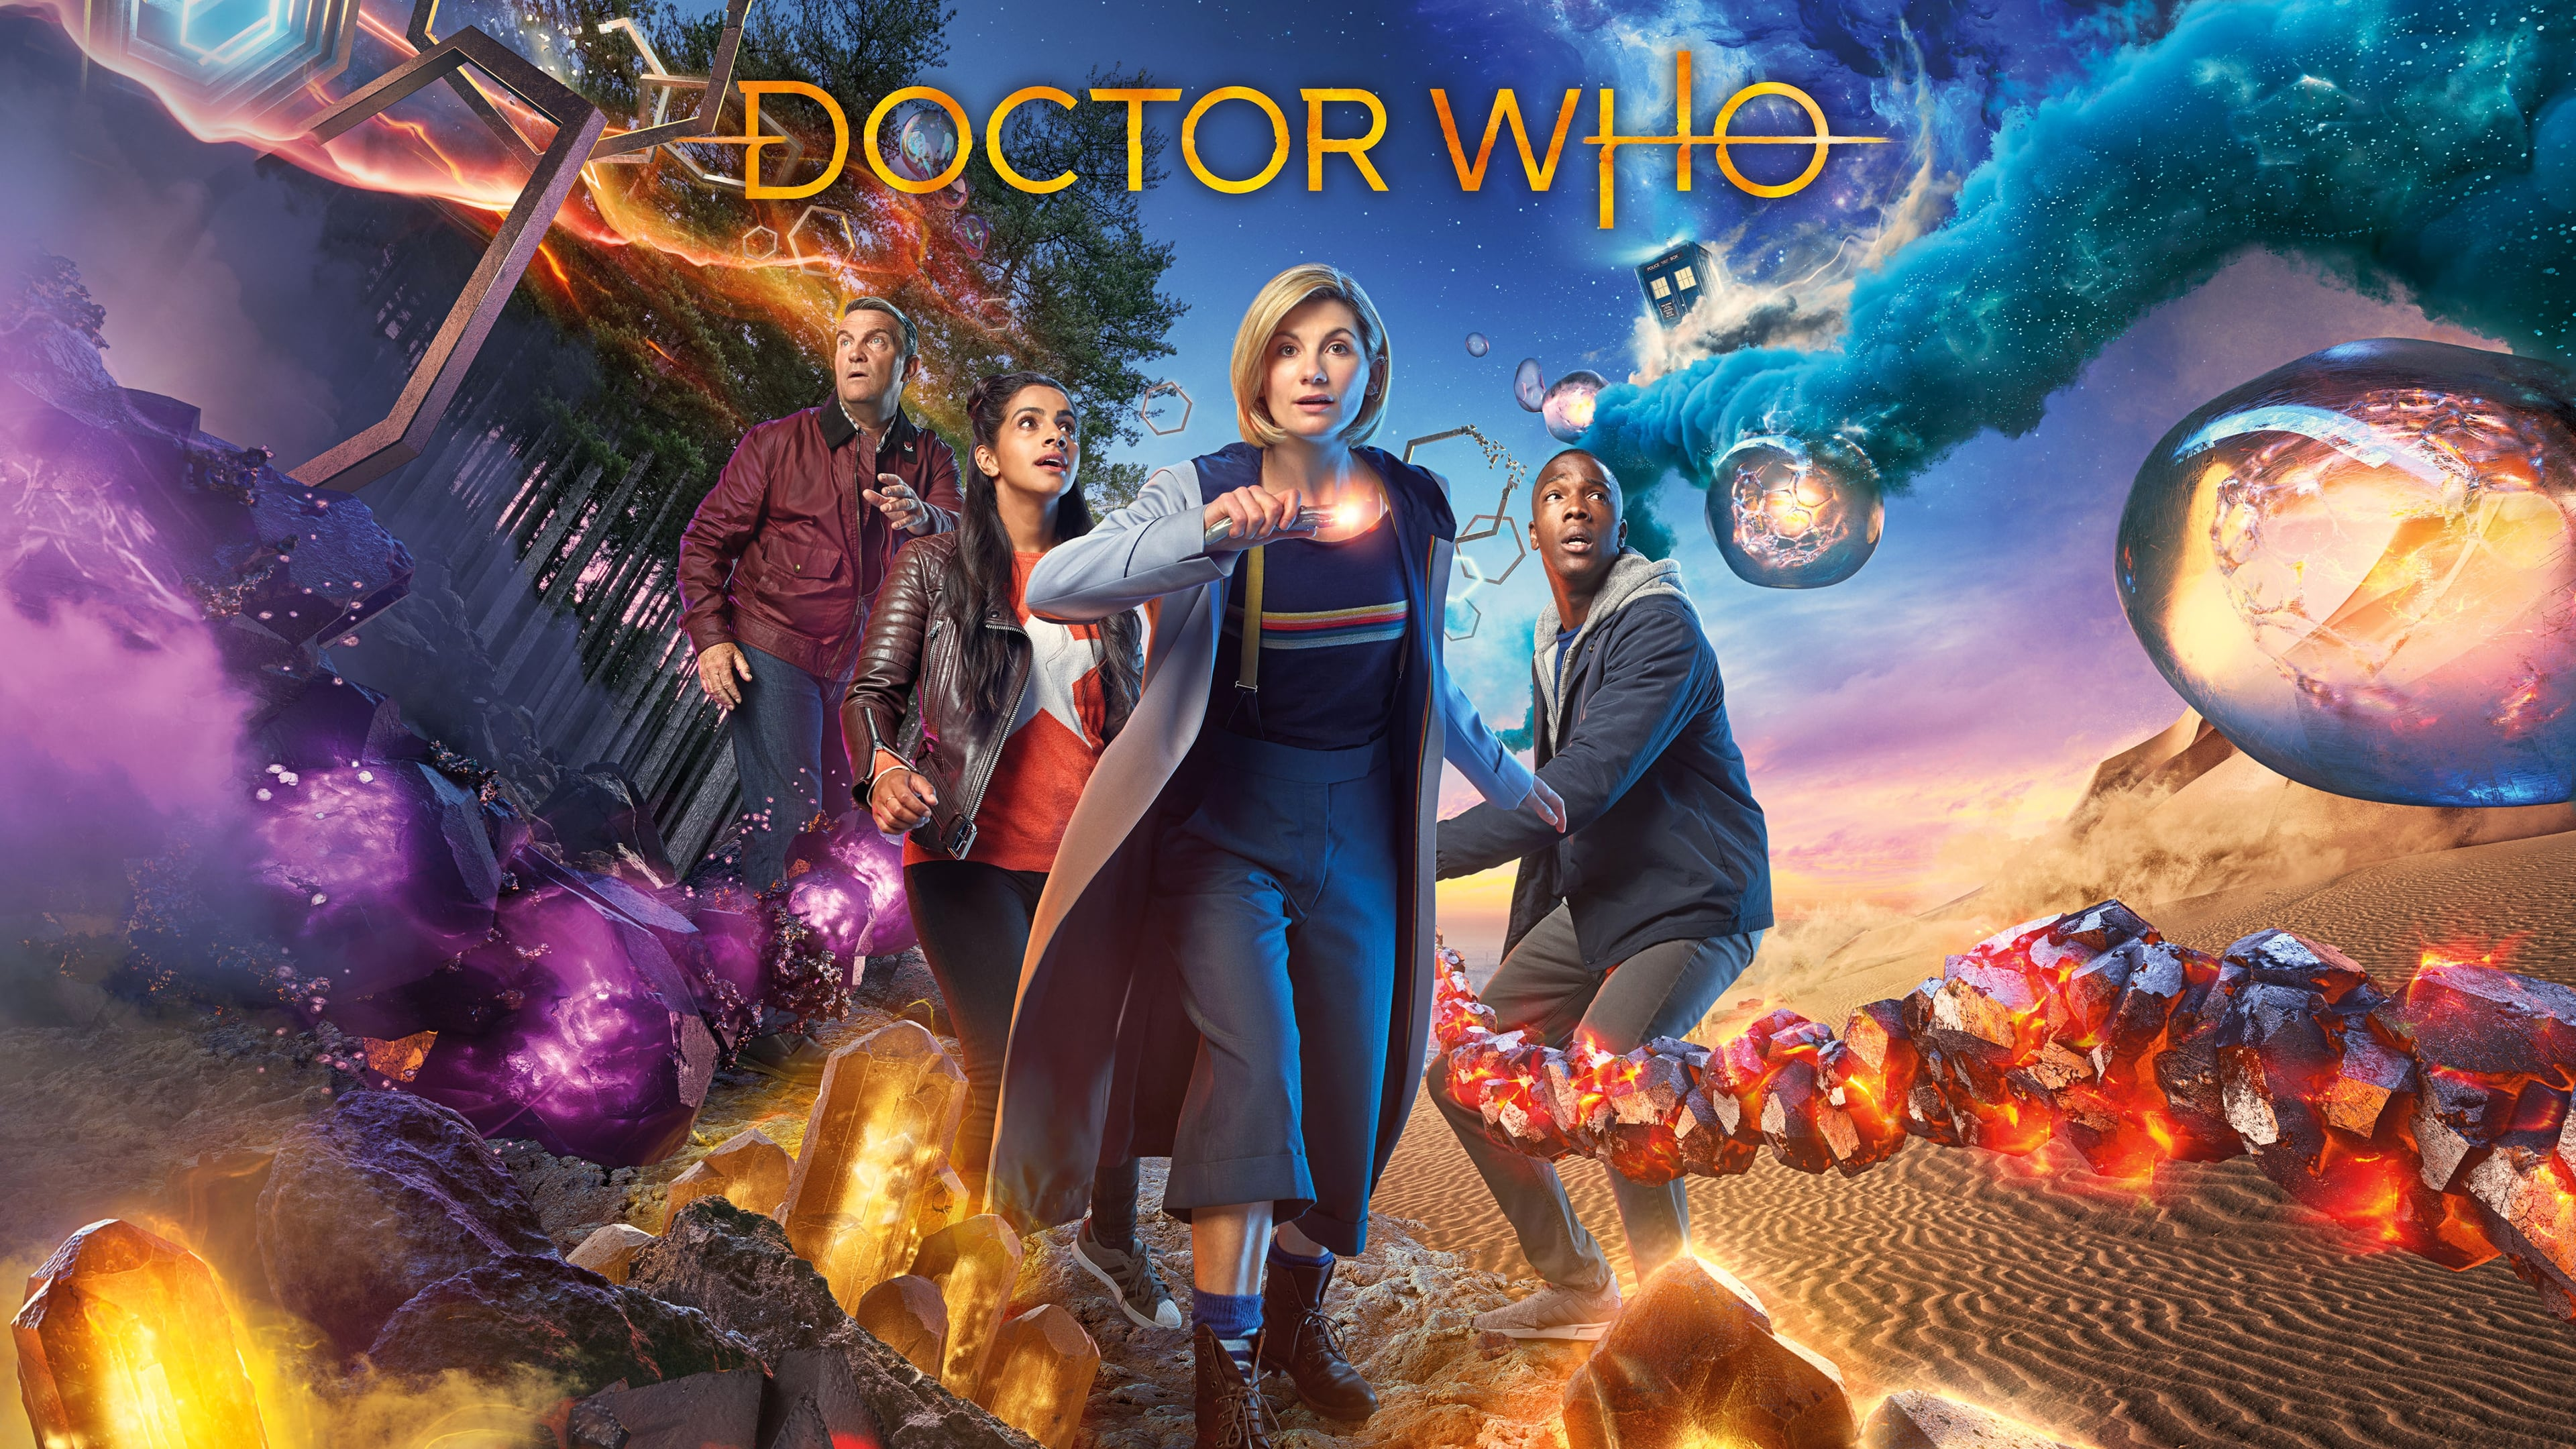 Doctor Who - Season 12 Episode 6